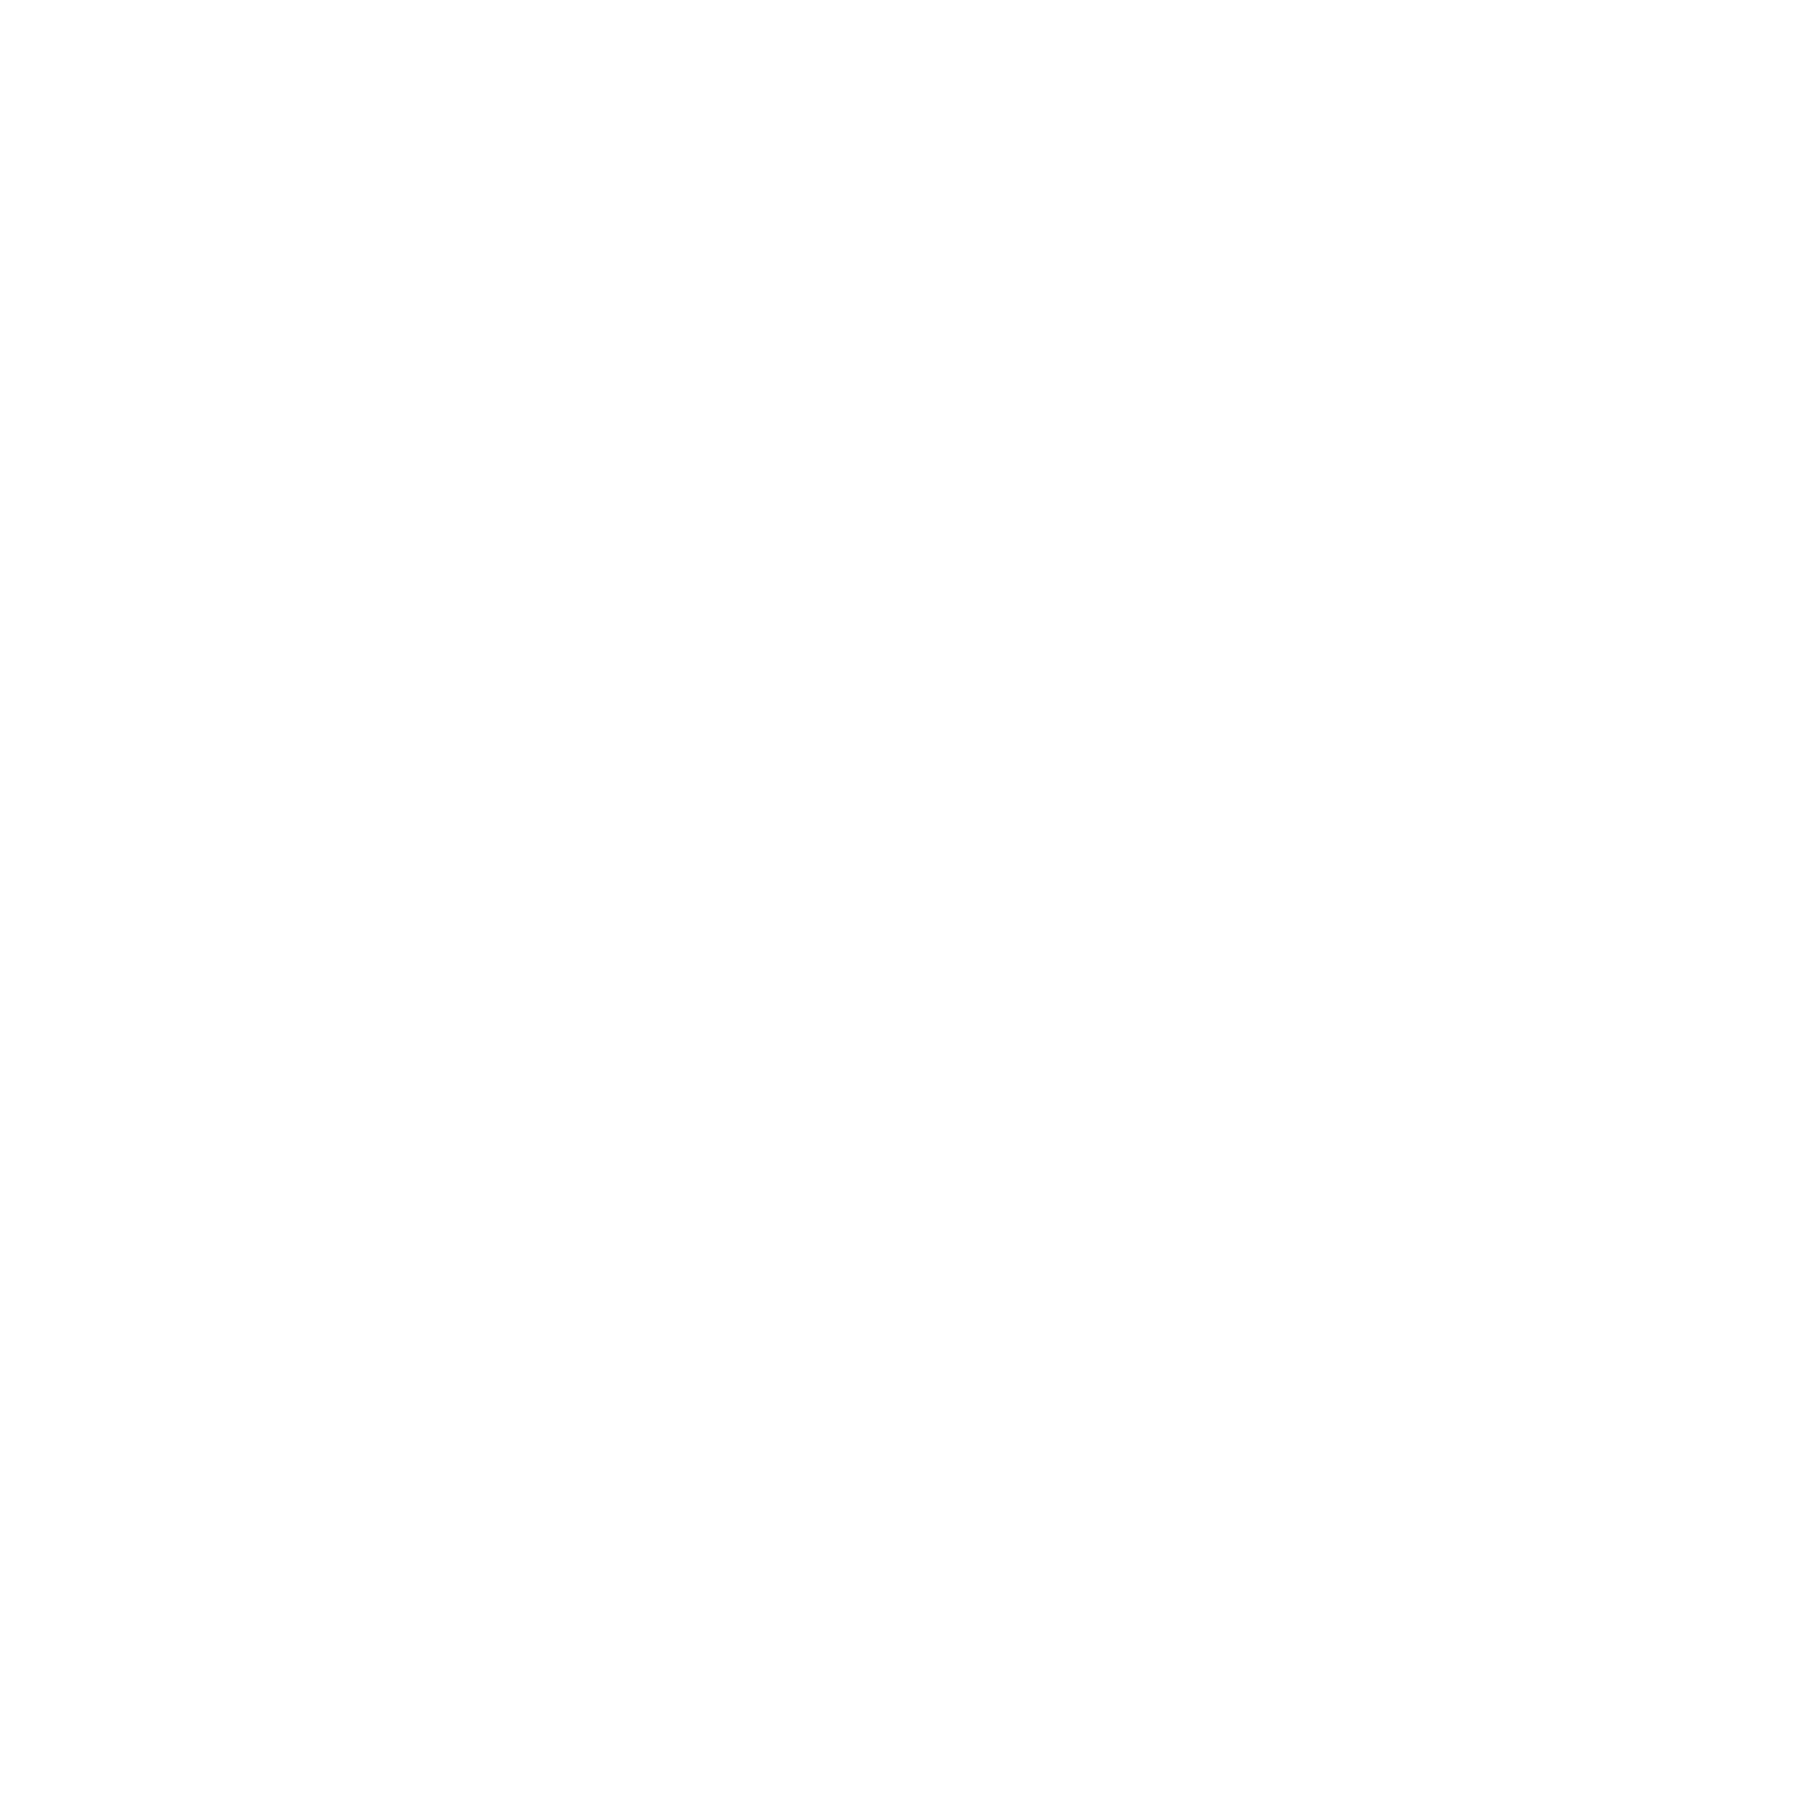 EN: We Care Association